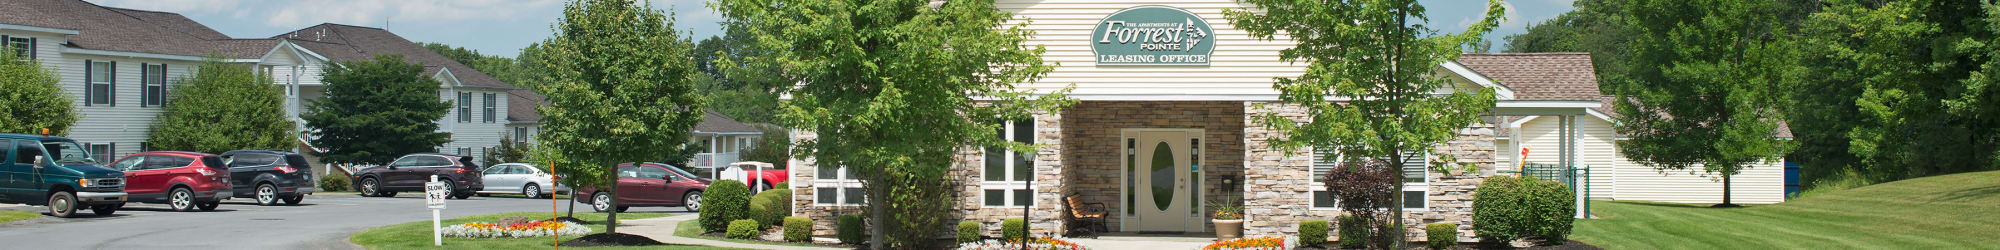 Amenities at Forrest Pointe Apartments and Townhomes in East Greenbush